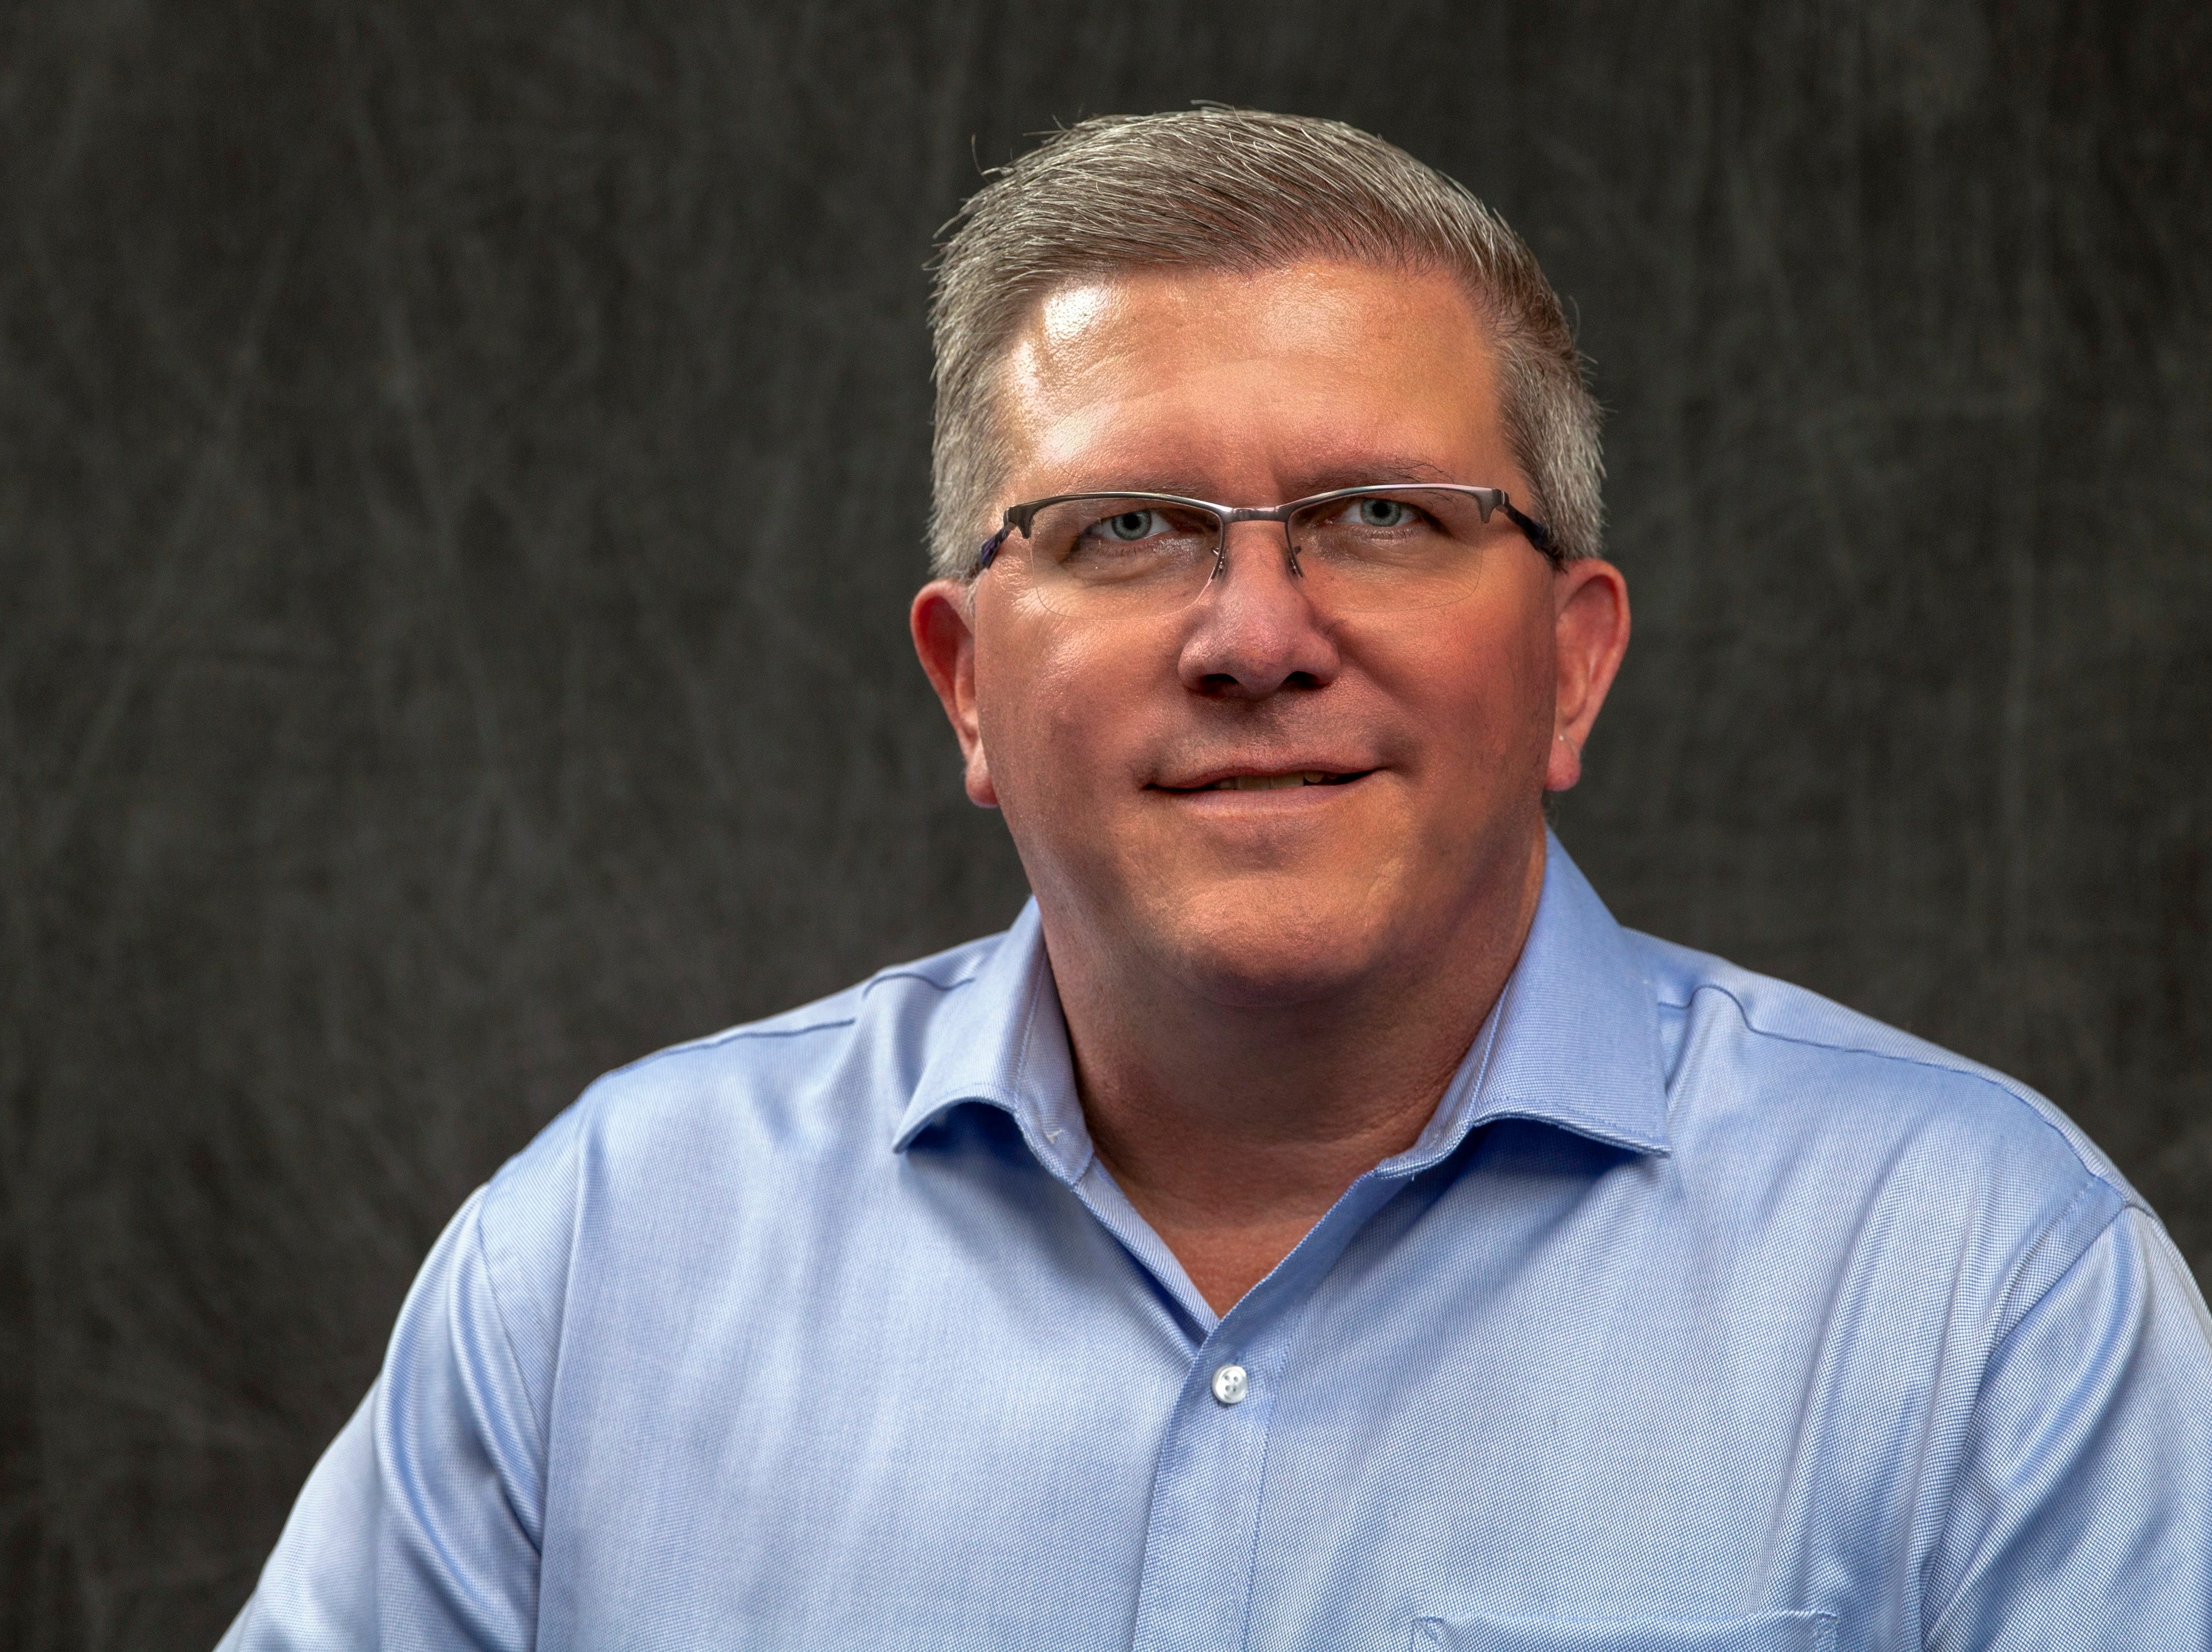 The Tranzonic Companies has promoted Brian Rhoades, expanding his oversight as vice president of operations to include facilities in Sparks, Nevada, and Montebello, California, in addition to the firm's West Knoxville location.